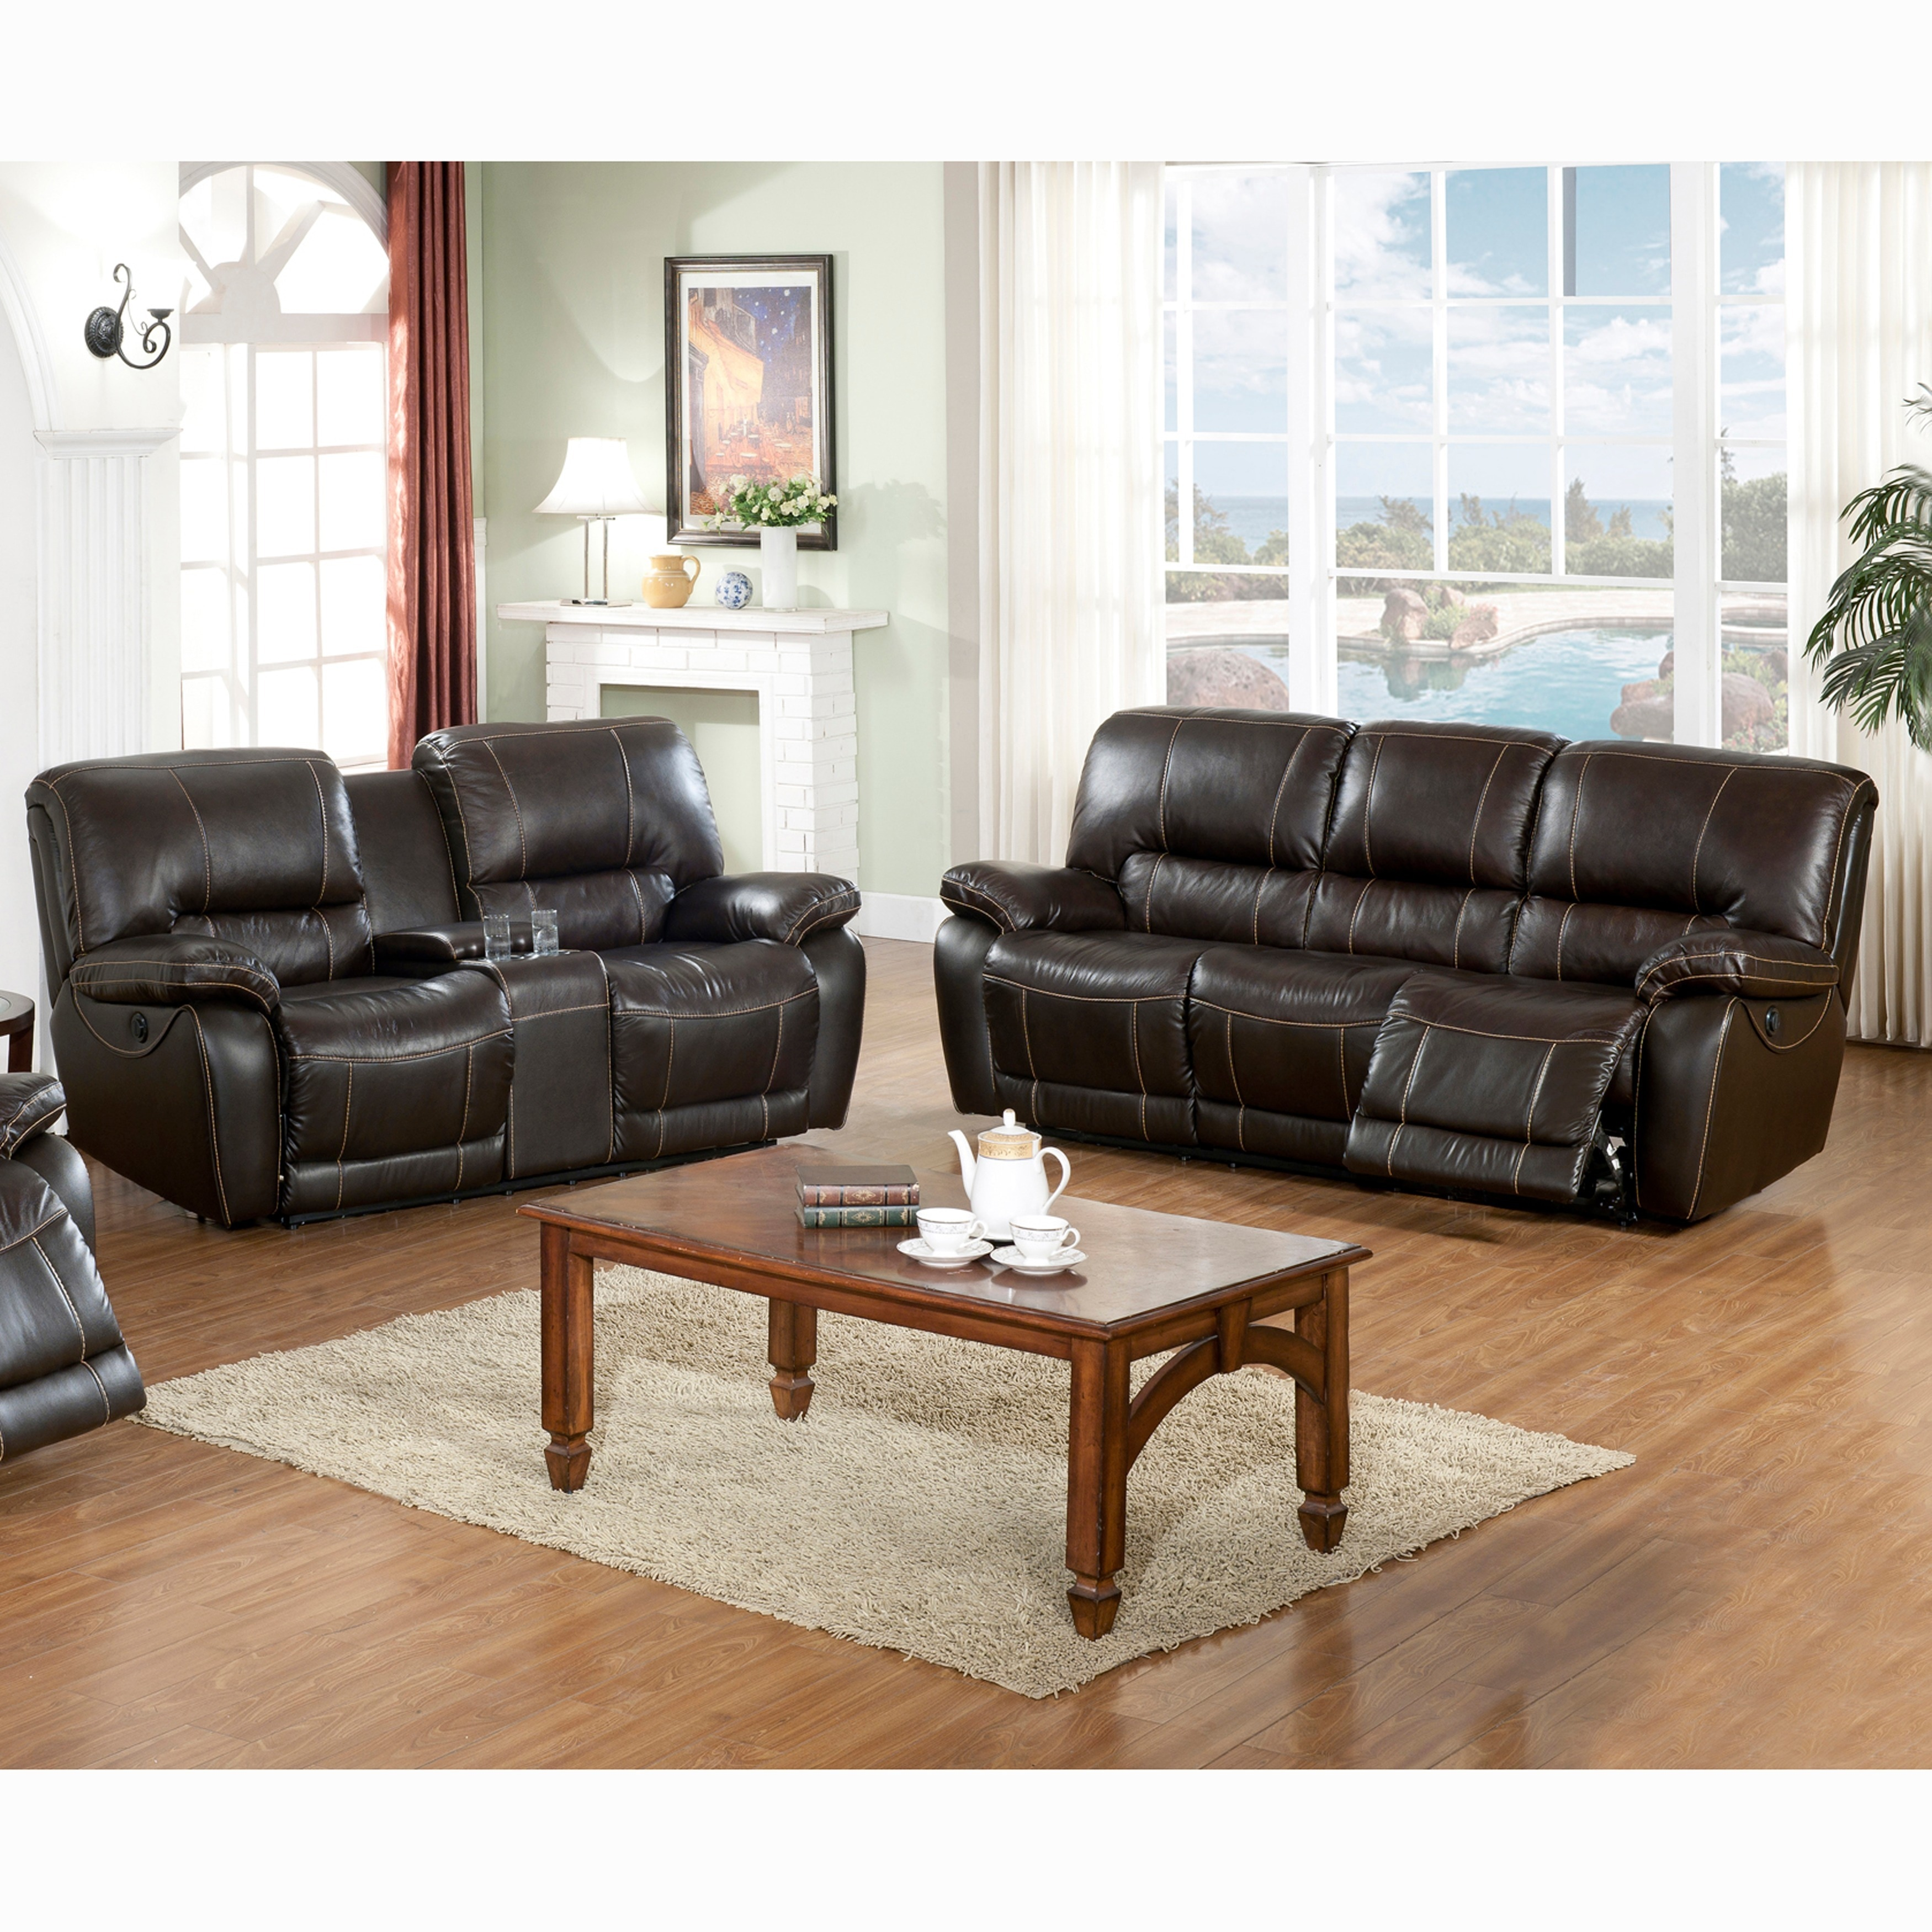 Walton Brown Top Grain Leather Power Reclining Sofa and Loveseat